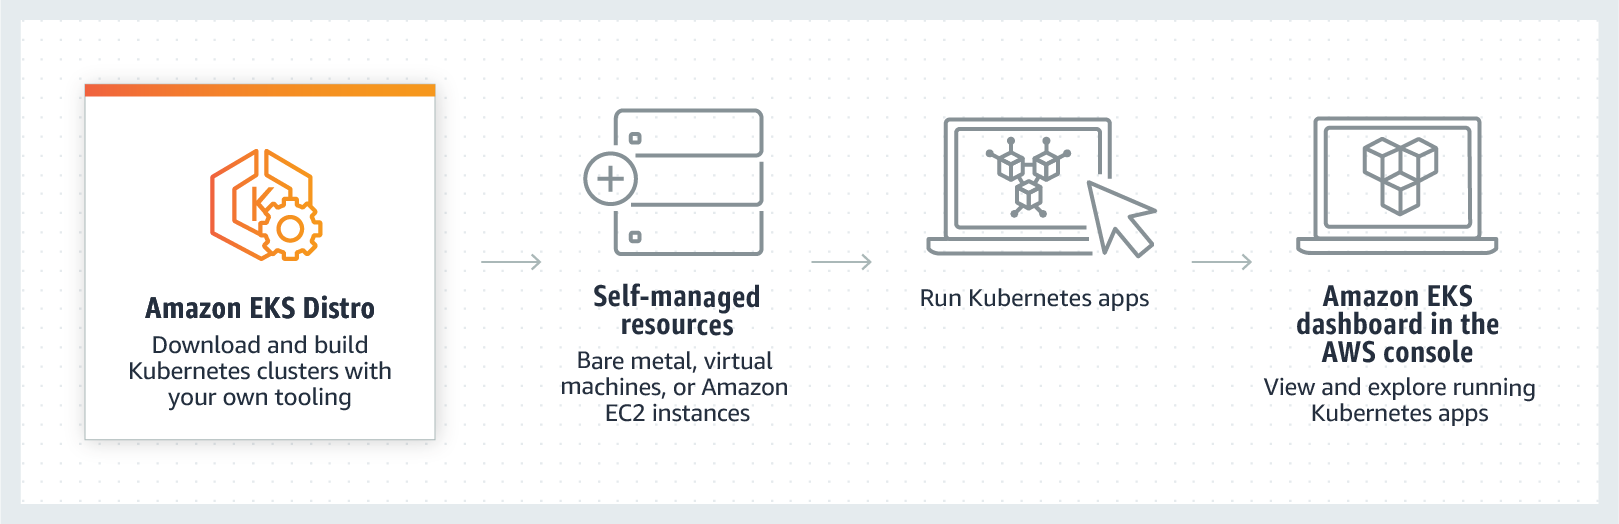 product-page-diagram_Amazon-EKS-Distro@2x